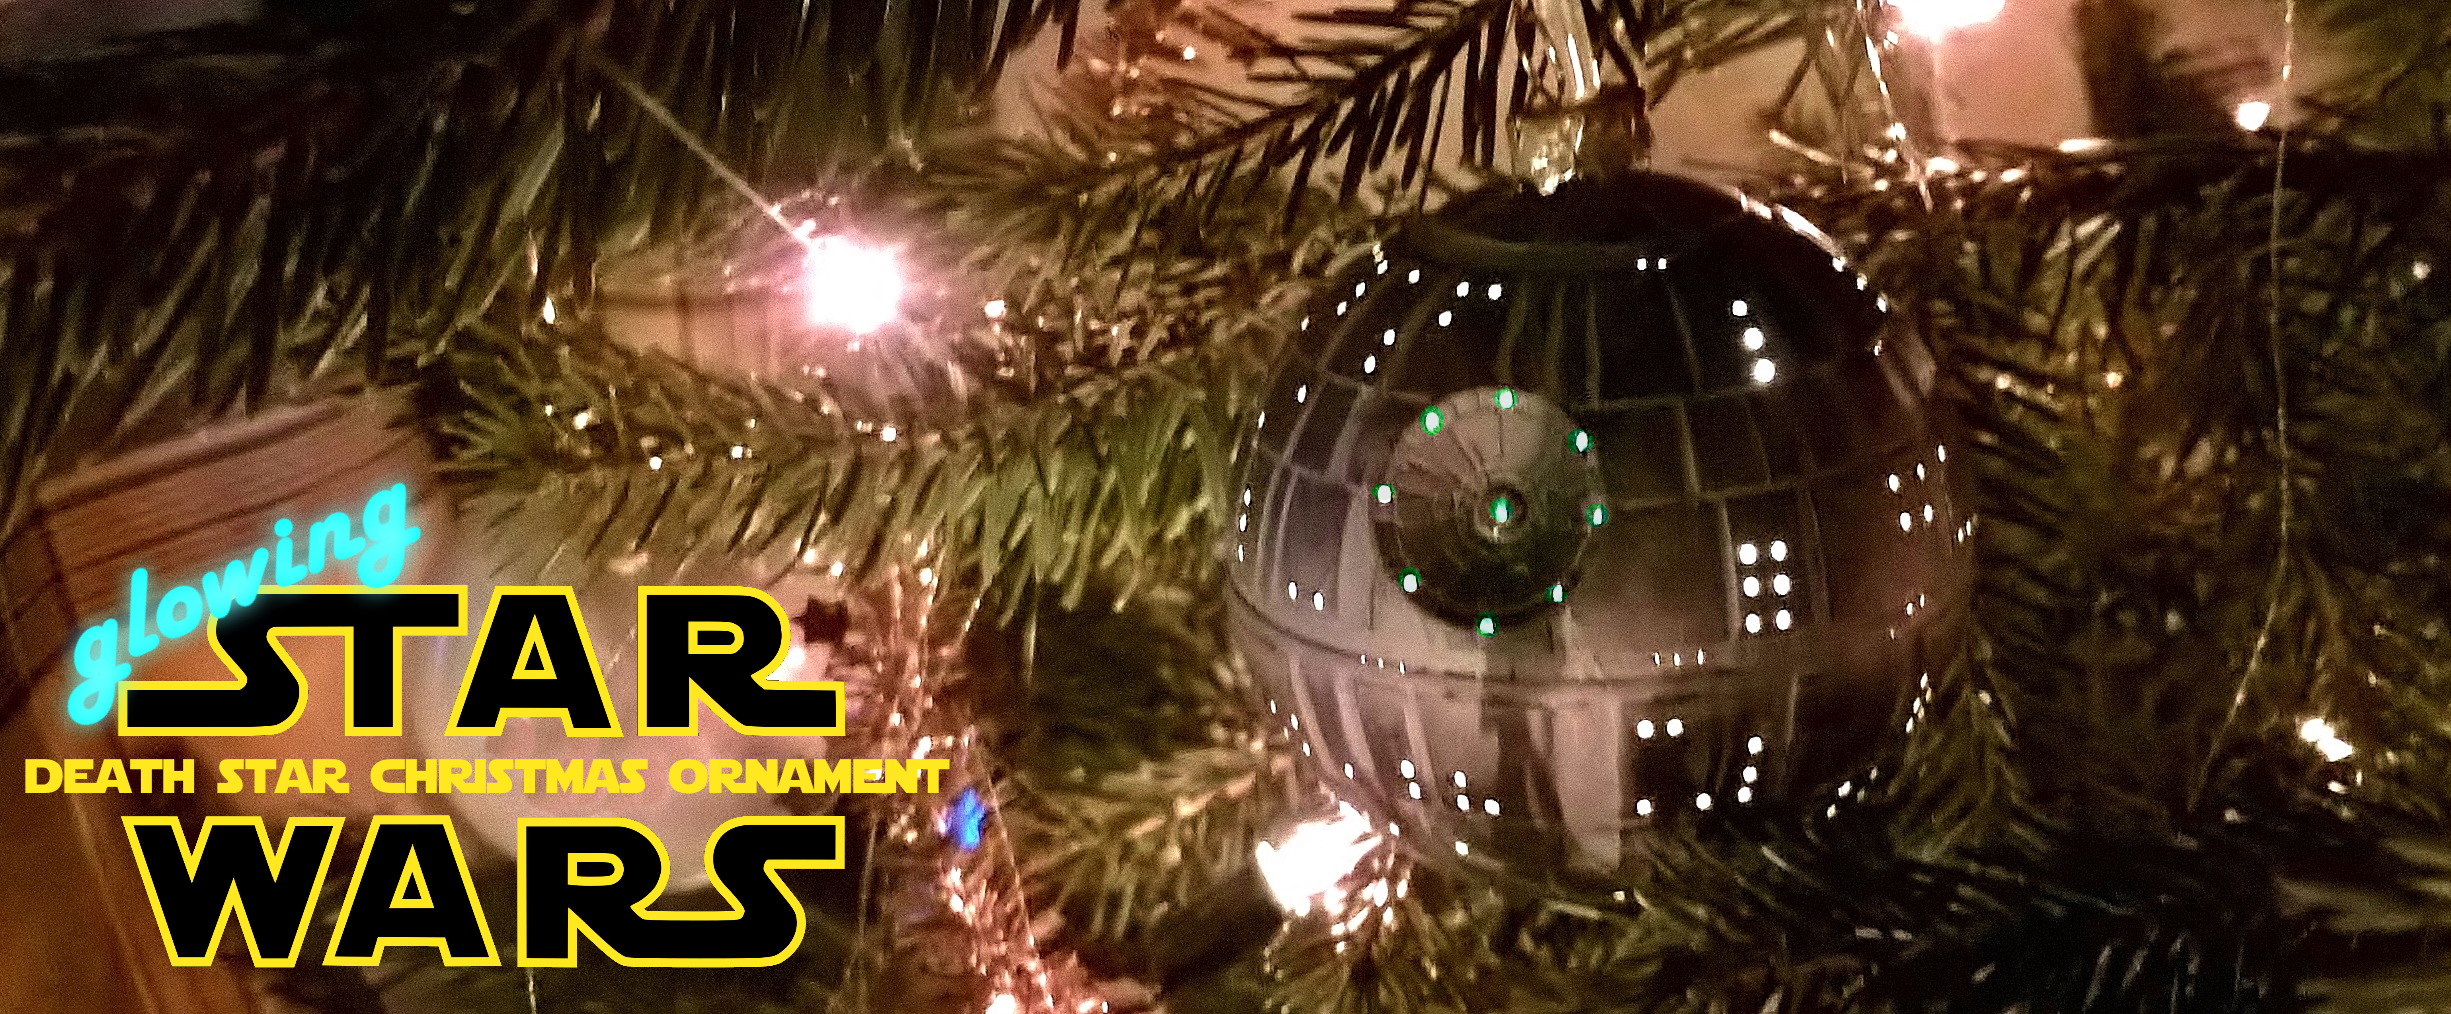 Picture of Glowing Death Star Christmas Ornament